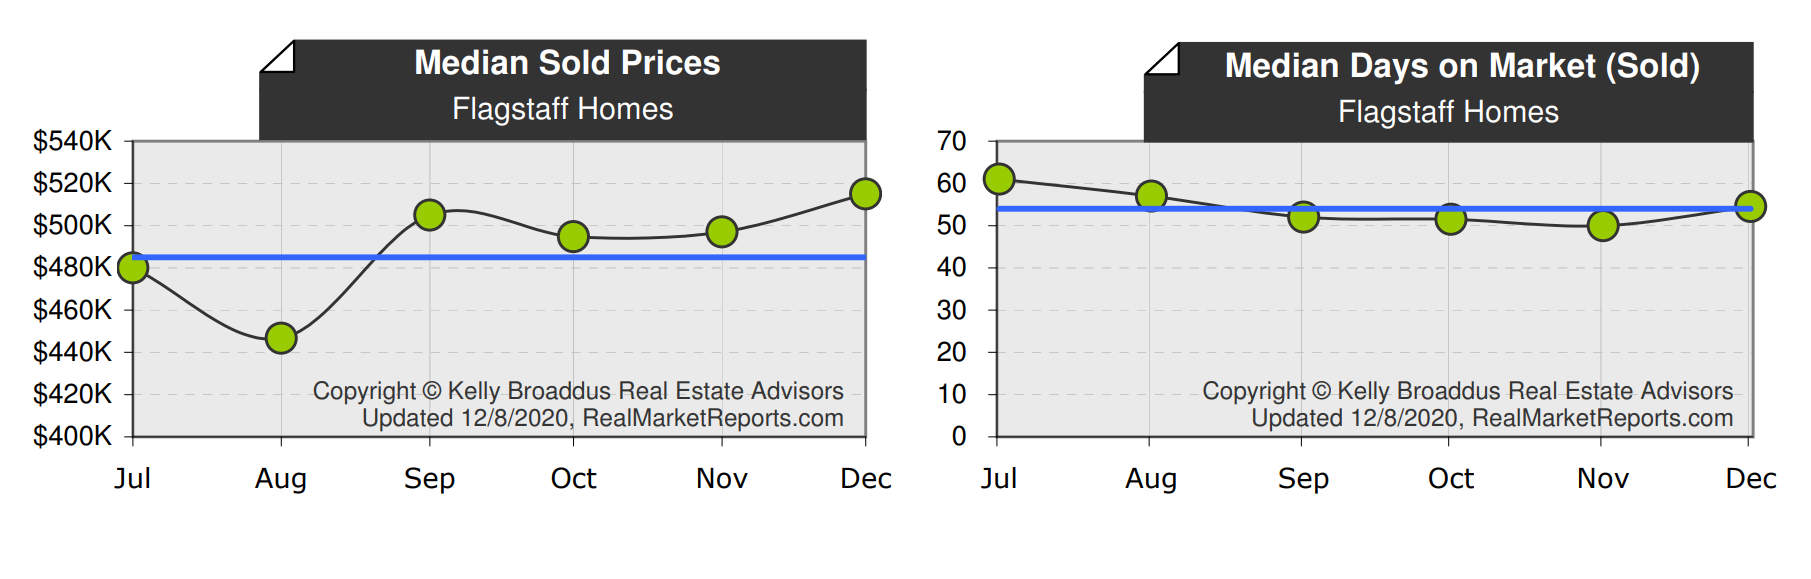 Median Sold Price Days on Market November 2020 Flagstaff